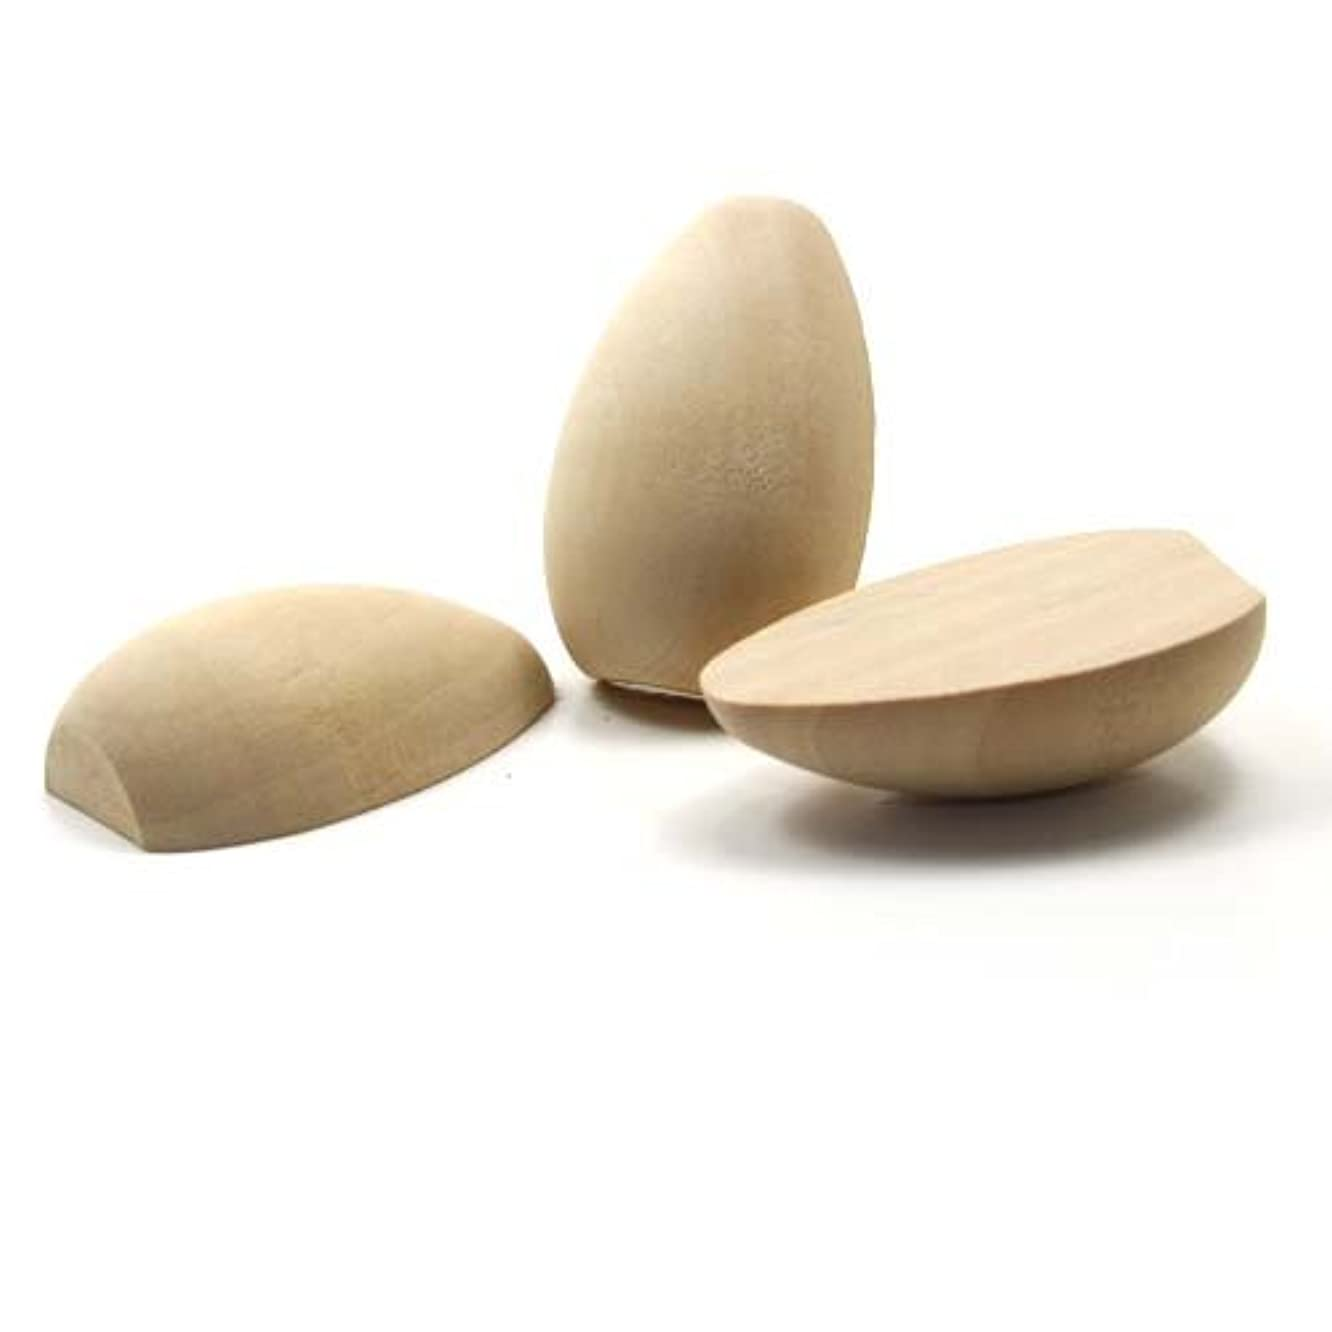 Mylittlewoodshop - Pkg of 25 - Egg Split - 1-5/16 inches tall and 7/16 inches thick unfinished wood(WW-CPE065-26)